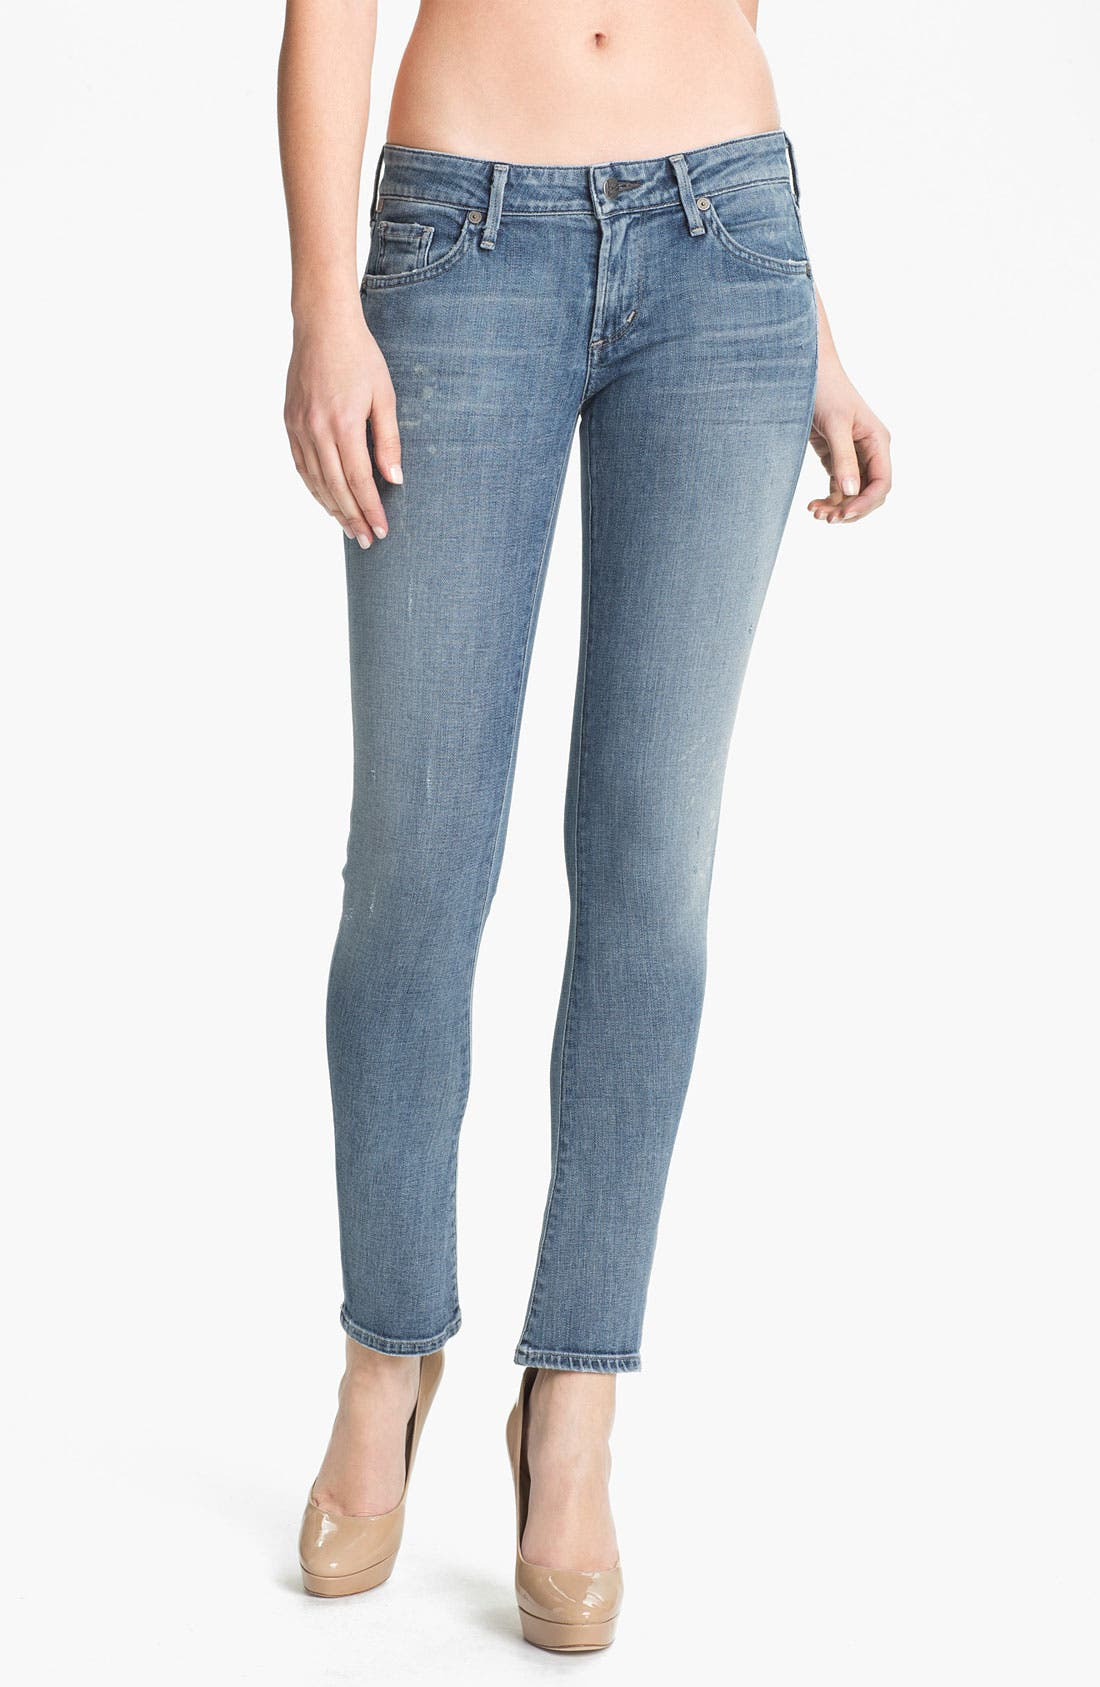 Alternate Image 1 Selected - Citizens of Humanity 'Racer' Low Rise Skinny Jeans (Mystic)